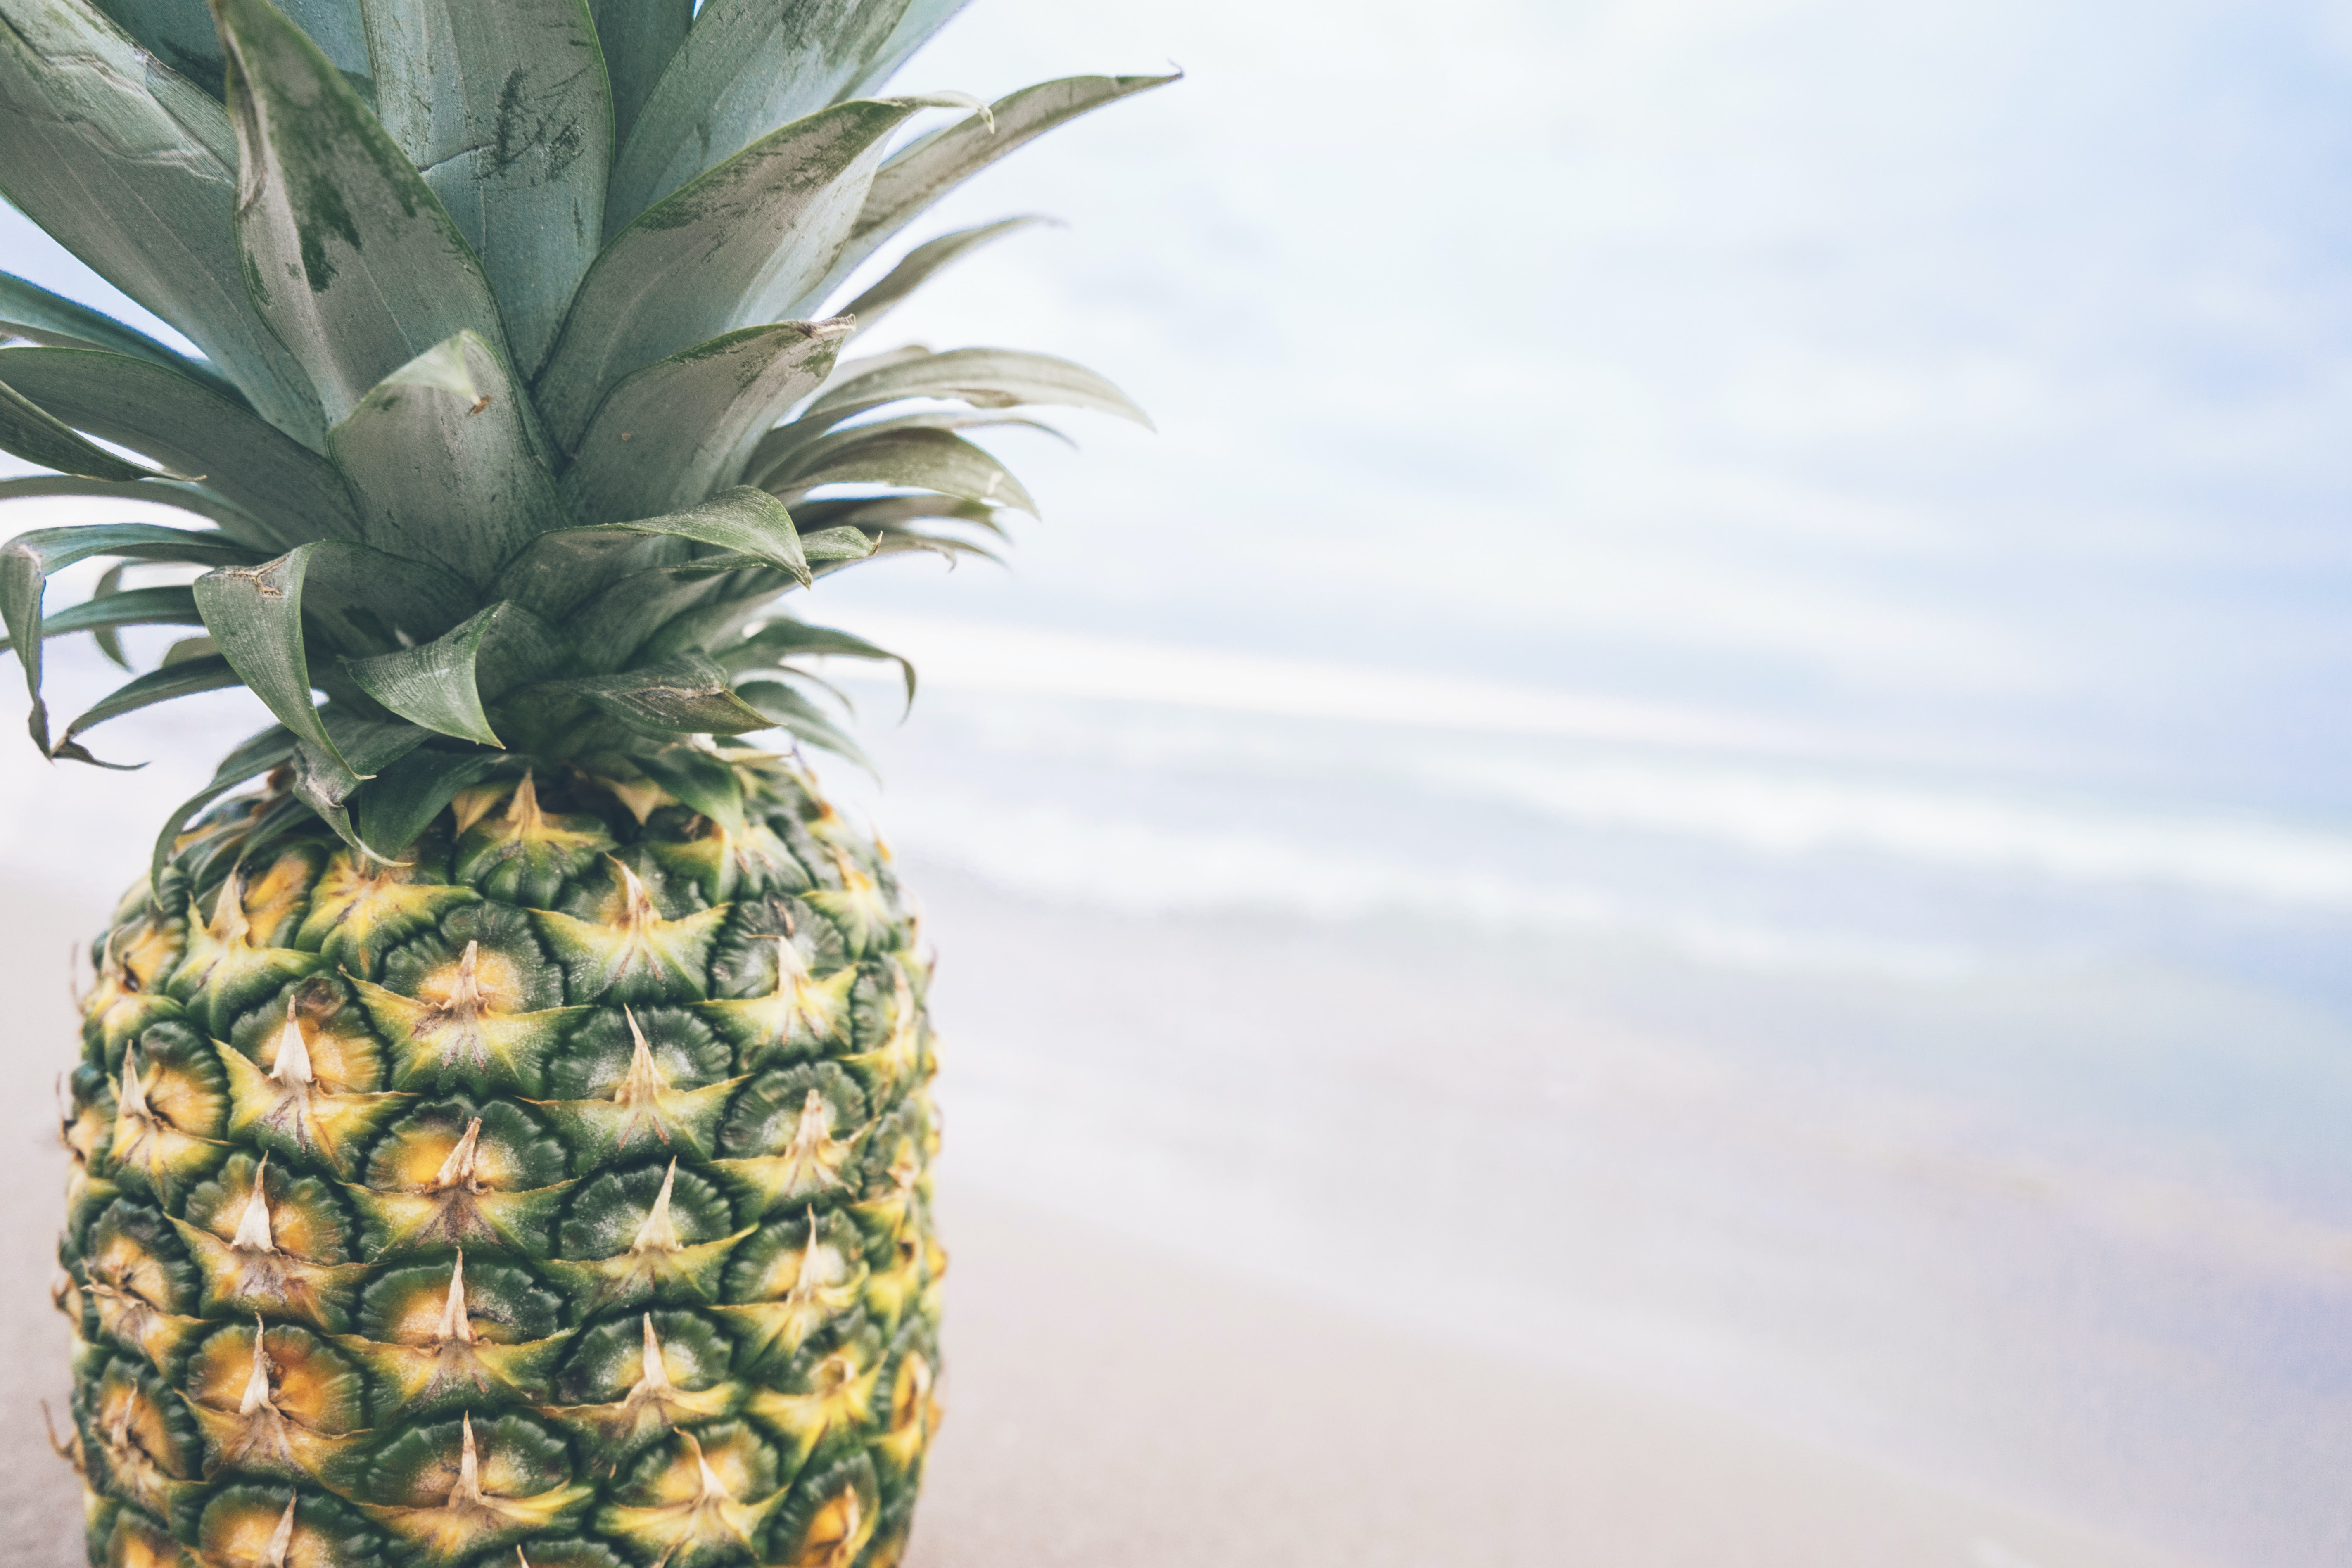 A pineapple with the sky in the background.